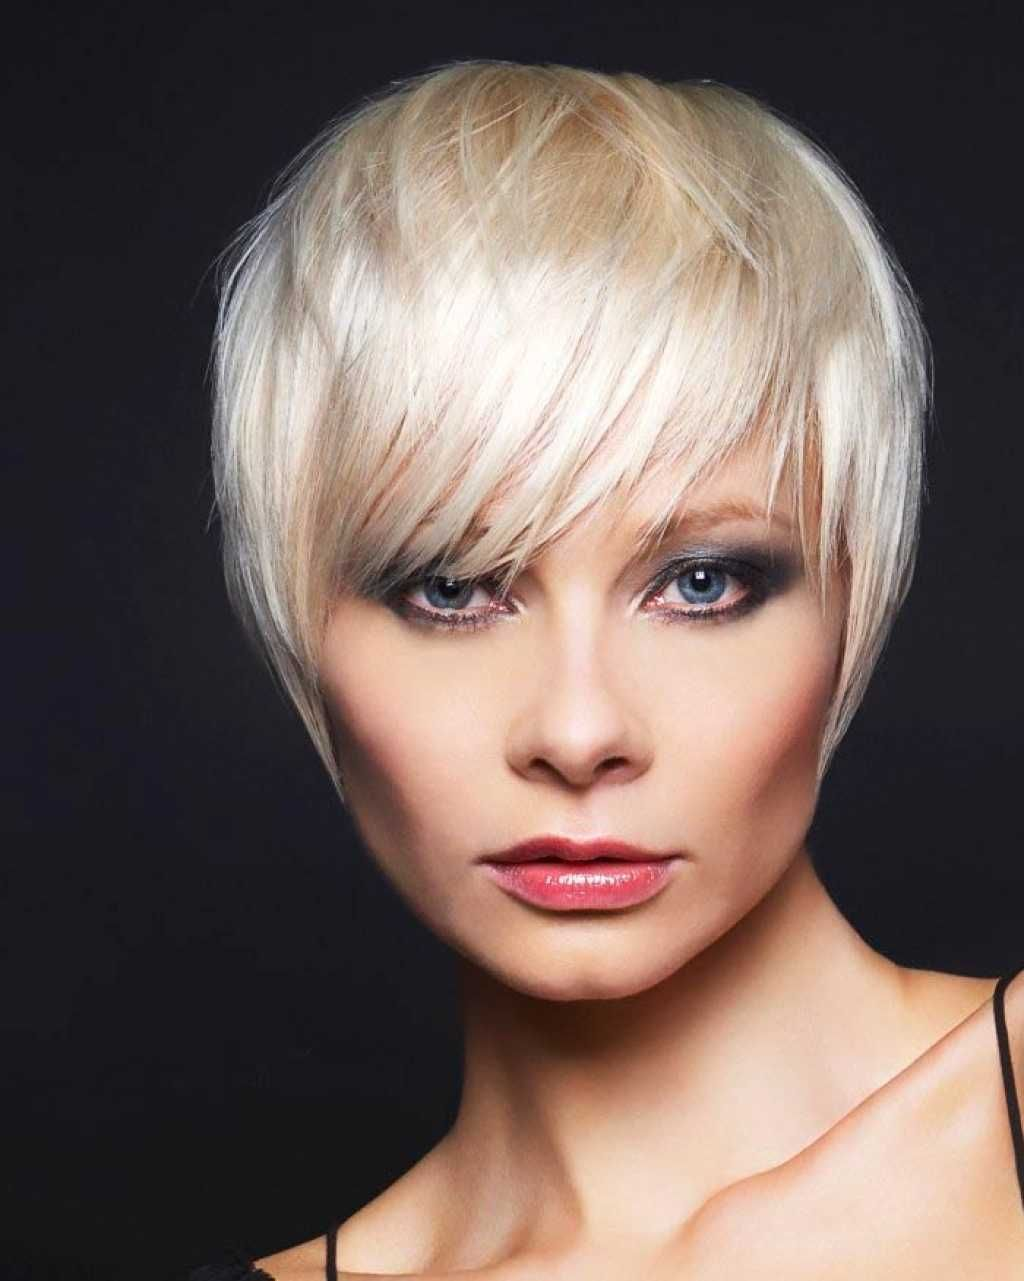 Fancy evening short hairstyle :: one1lady.com :: #hair #hairs #hairstyle…